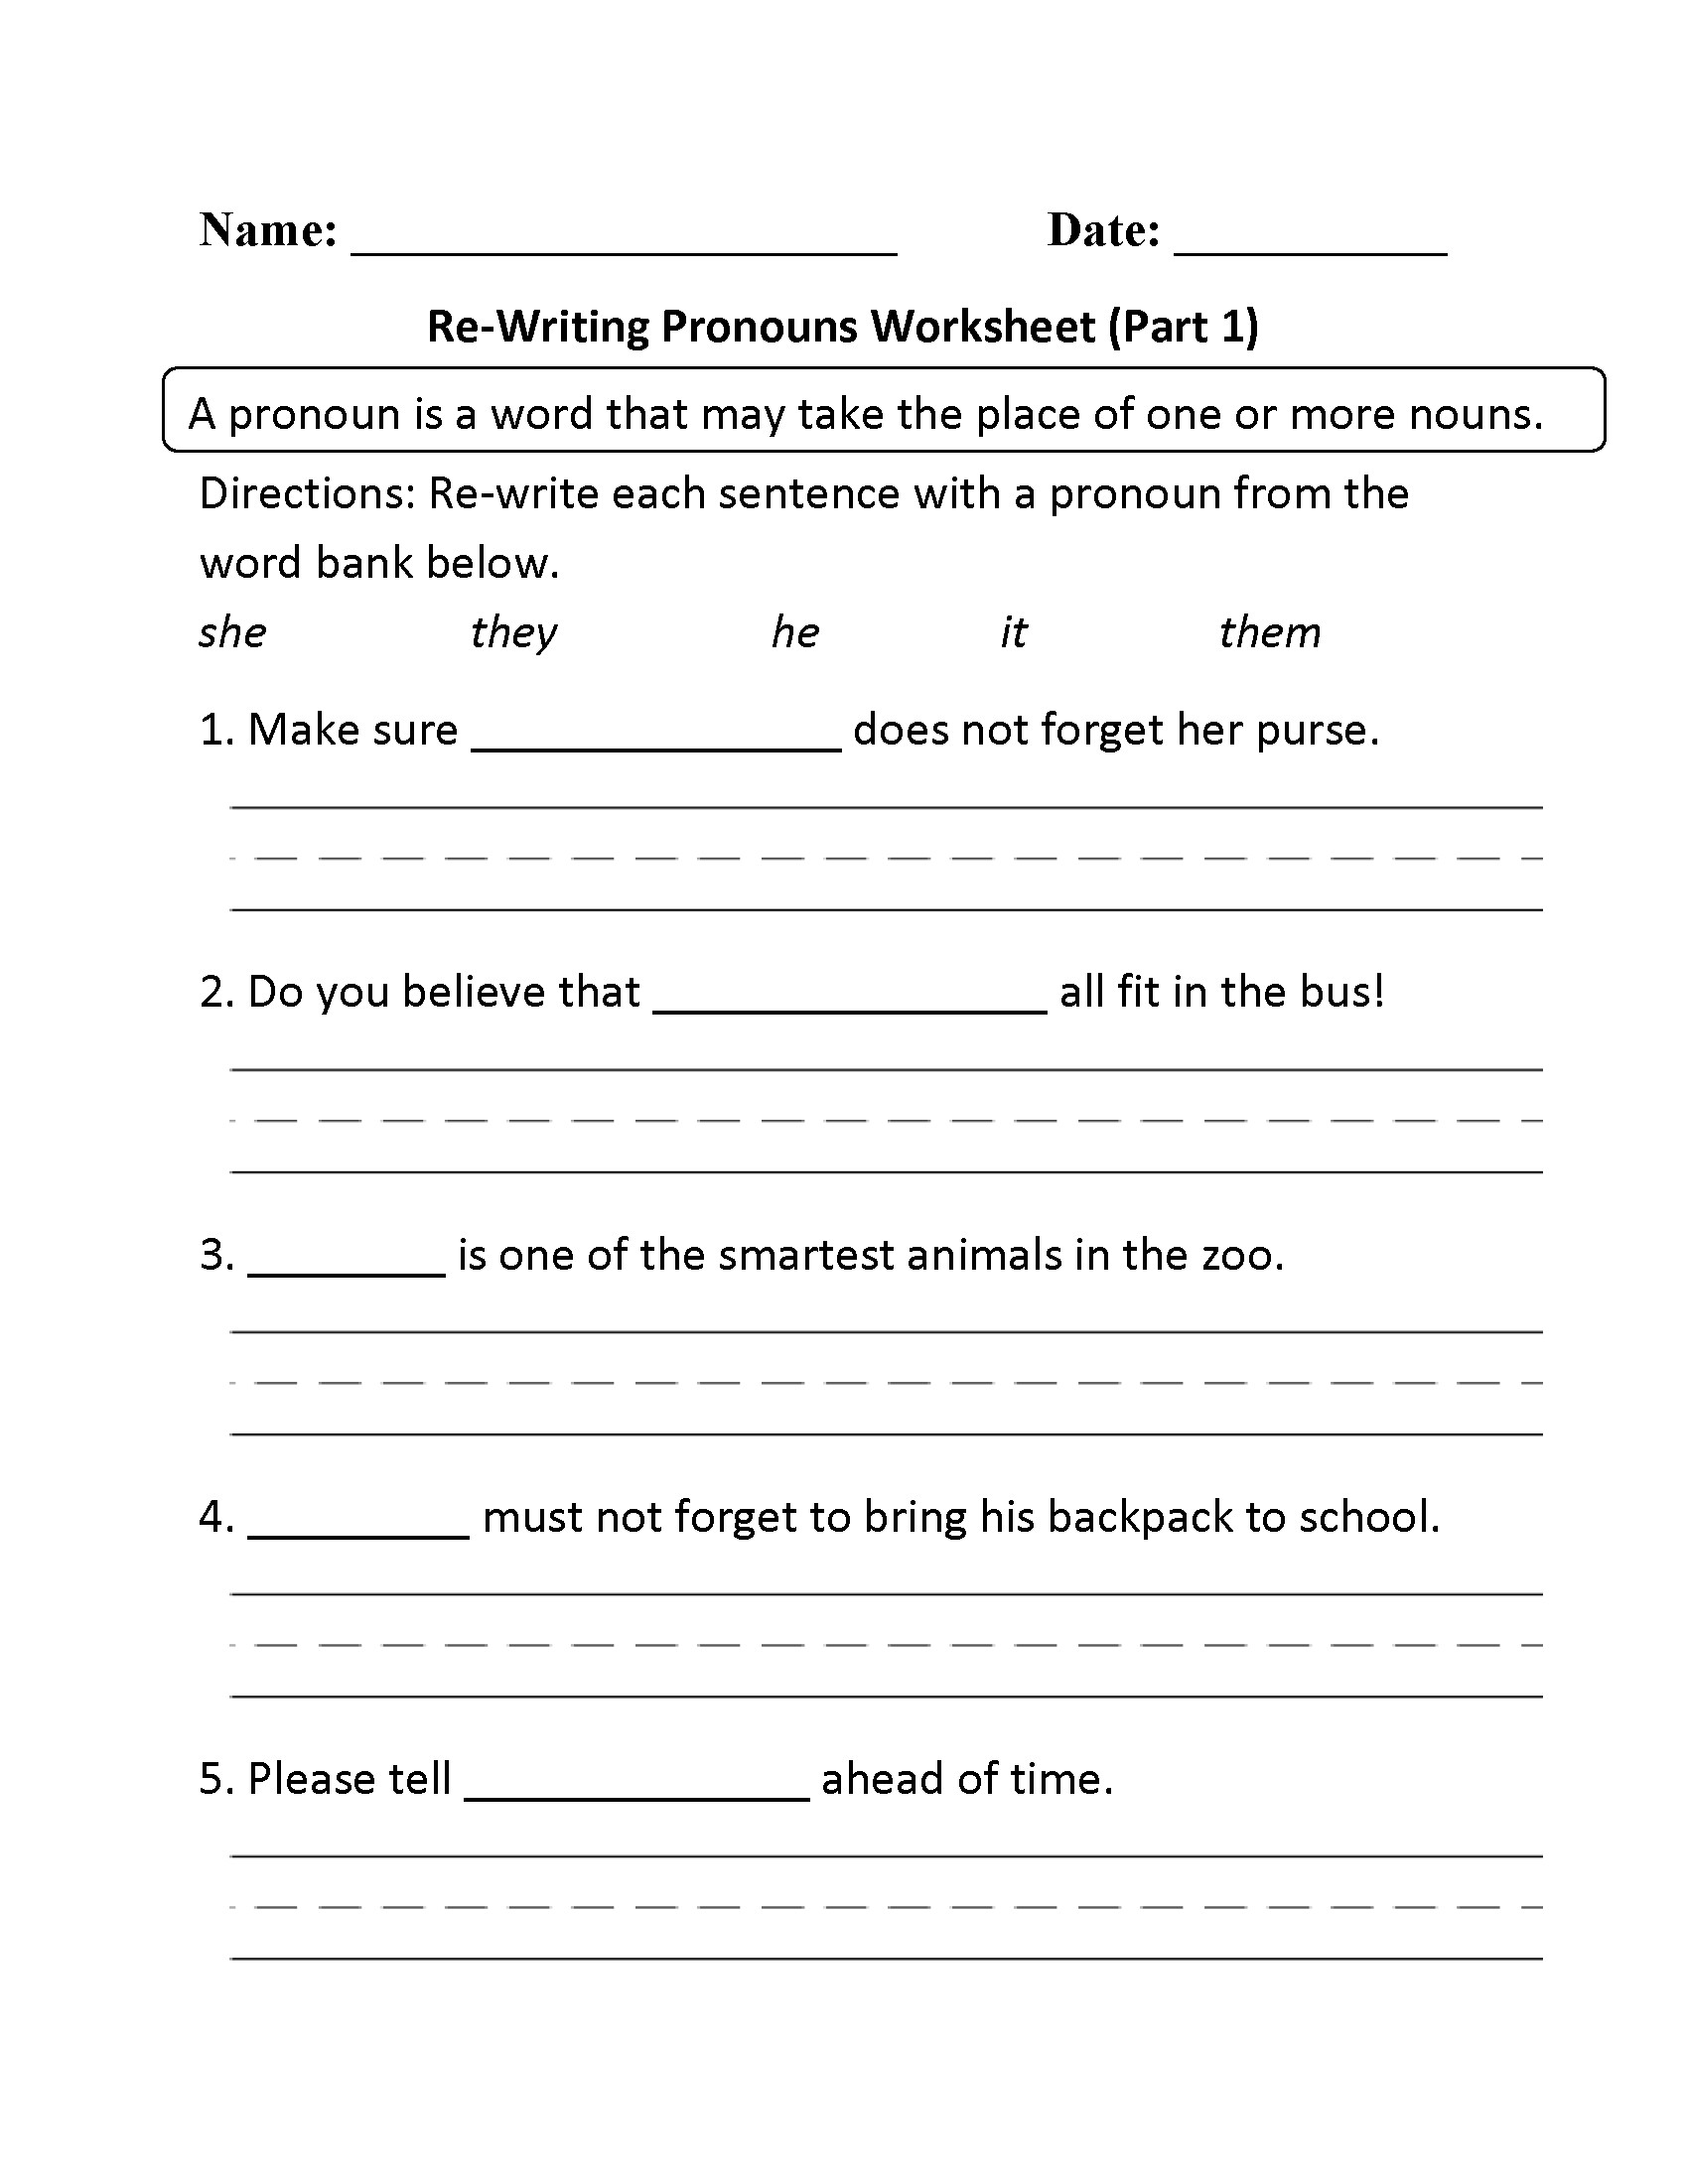 Pronoun Worksheet for 2nd Grade Free Pronoun Worksheet for 2nd Grade